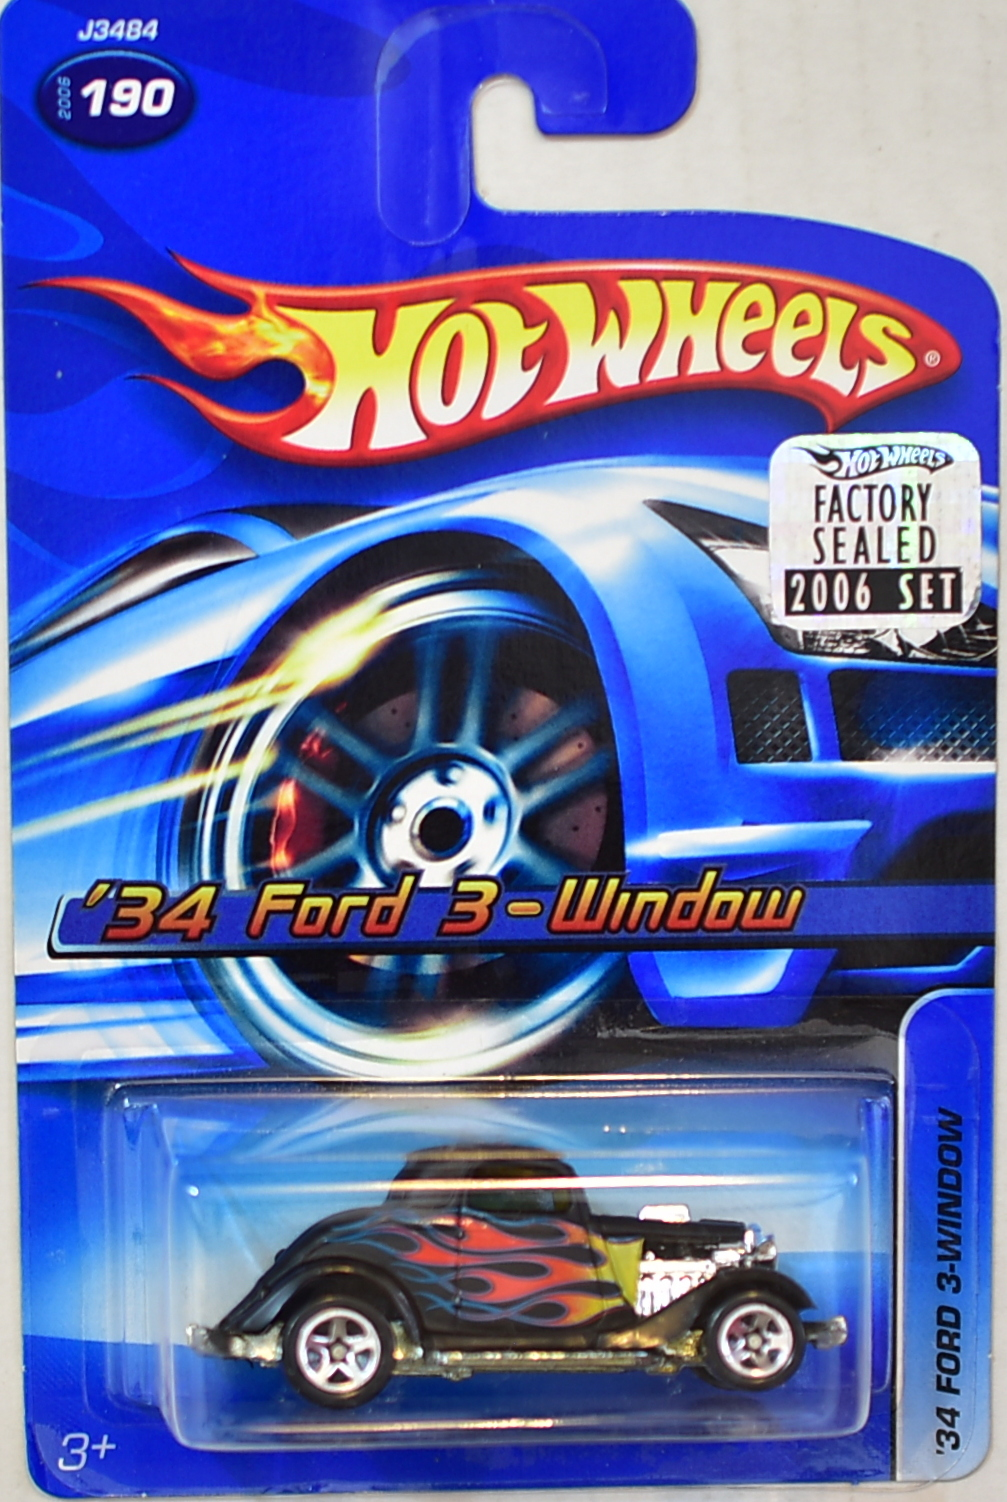 HOT WHEELS 2006 '34 FORD 3-WINDOW #190 FACTORY SEALED